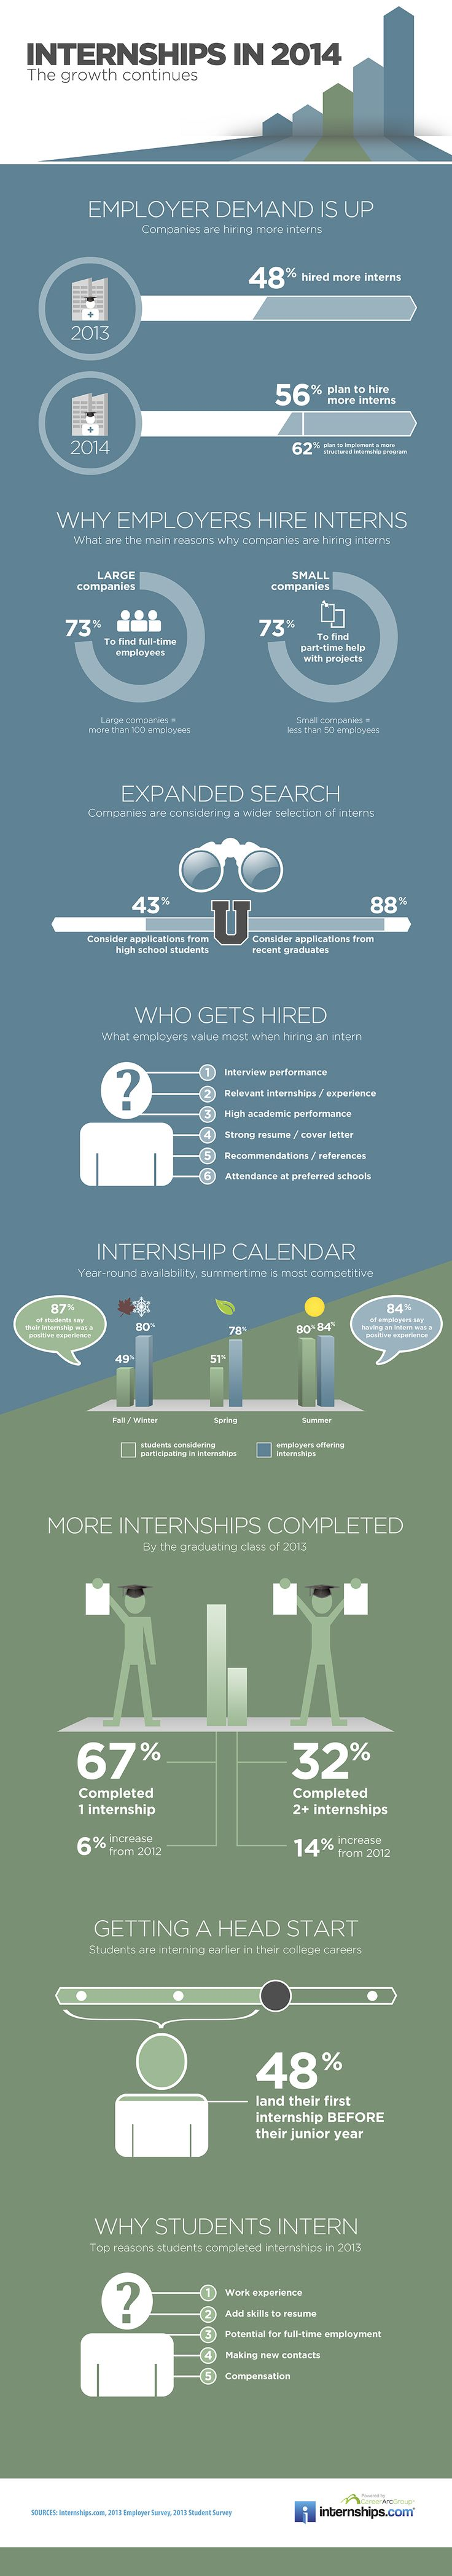 Check out Internshipscom for more internship opportunity